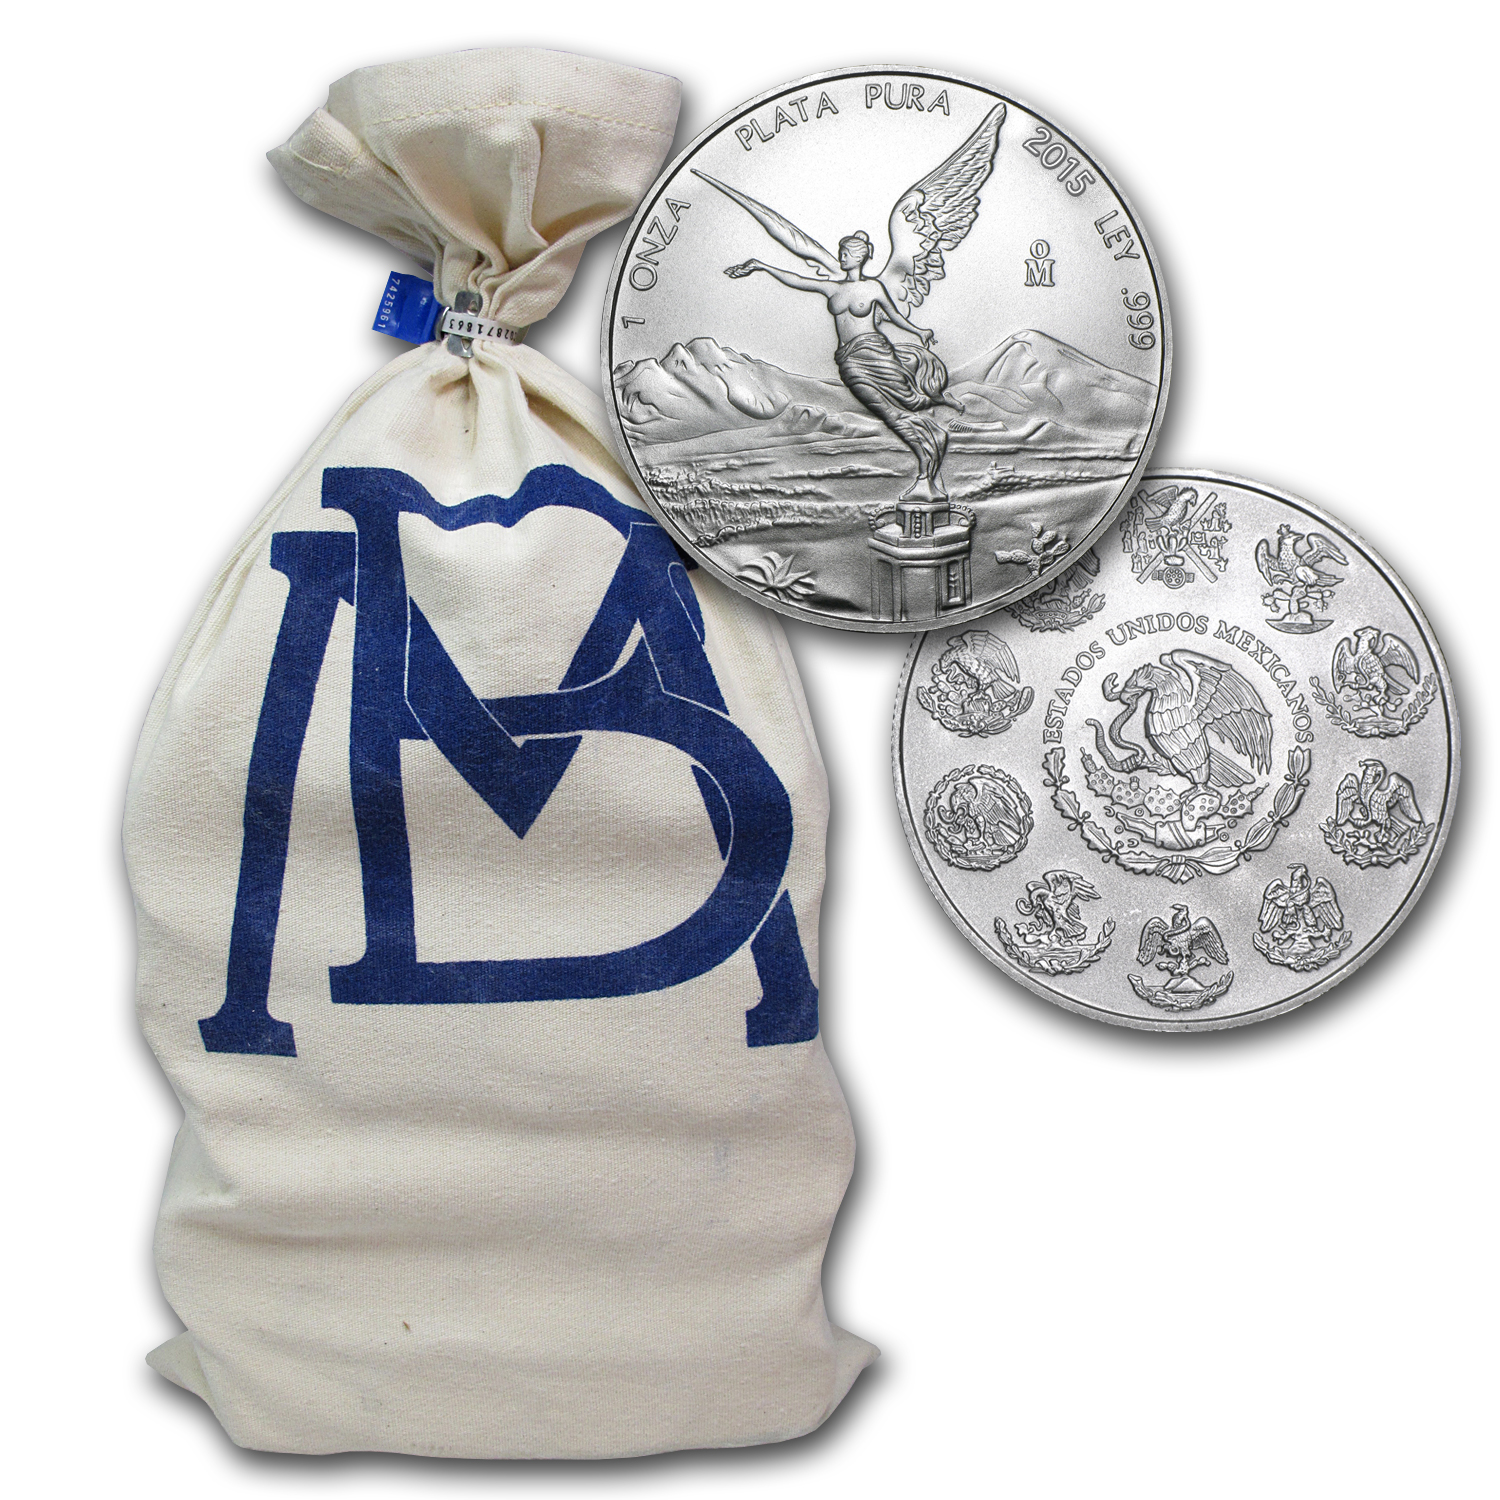 2015 Mexico 1 oz Silver Libertad (450-Coin Original Bank Bag)